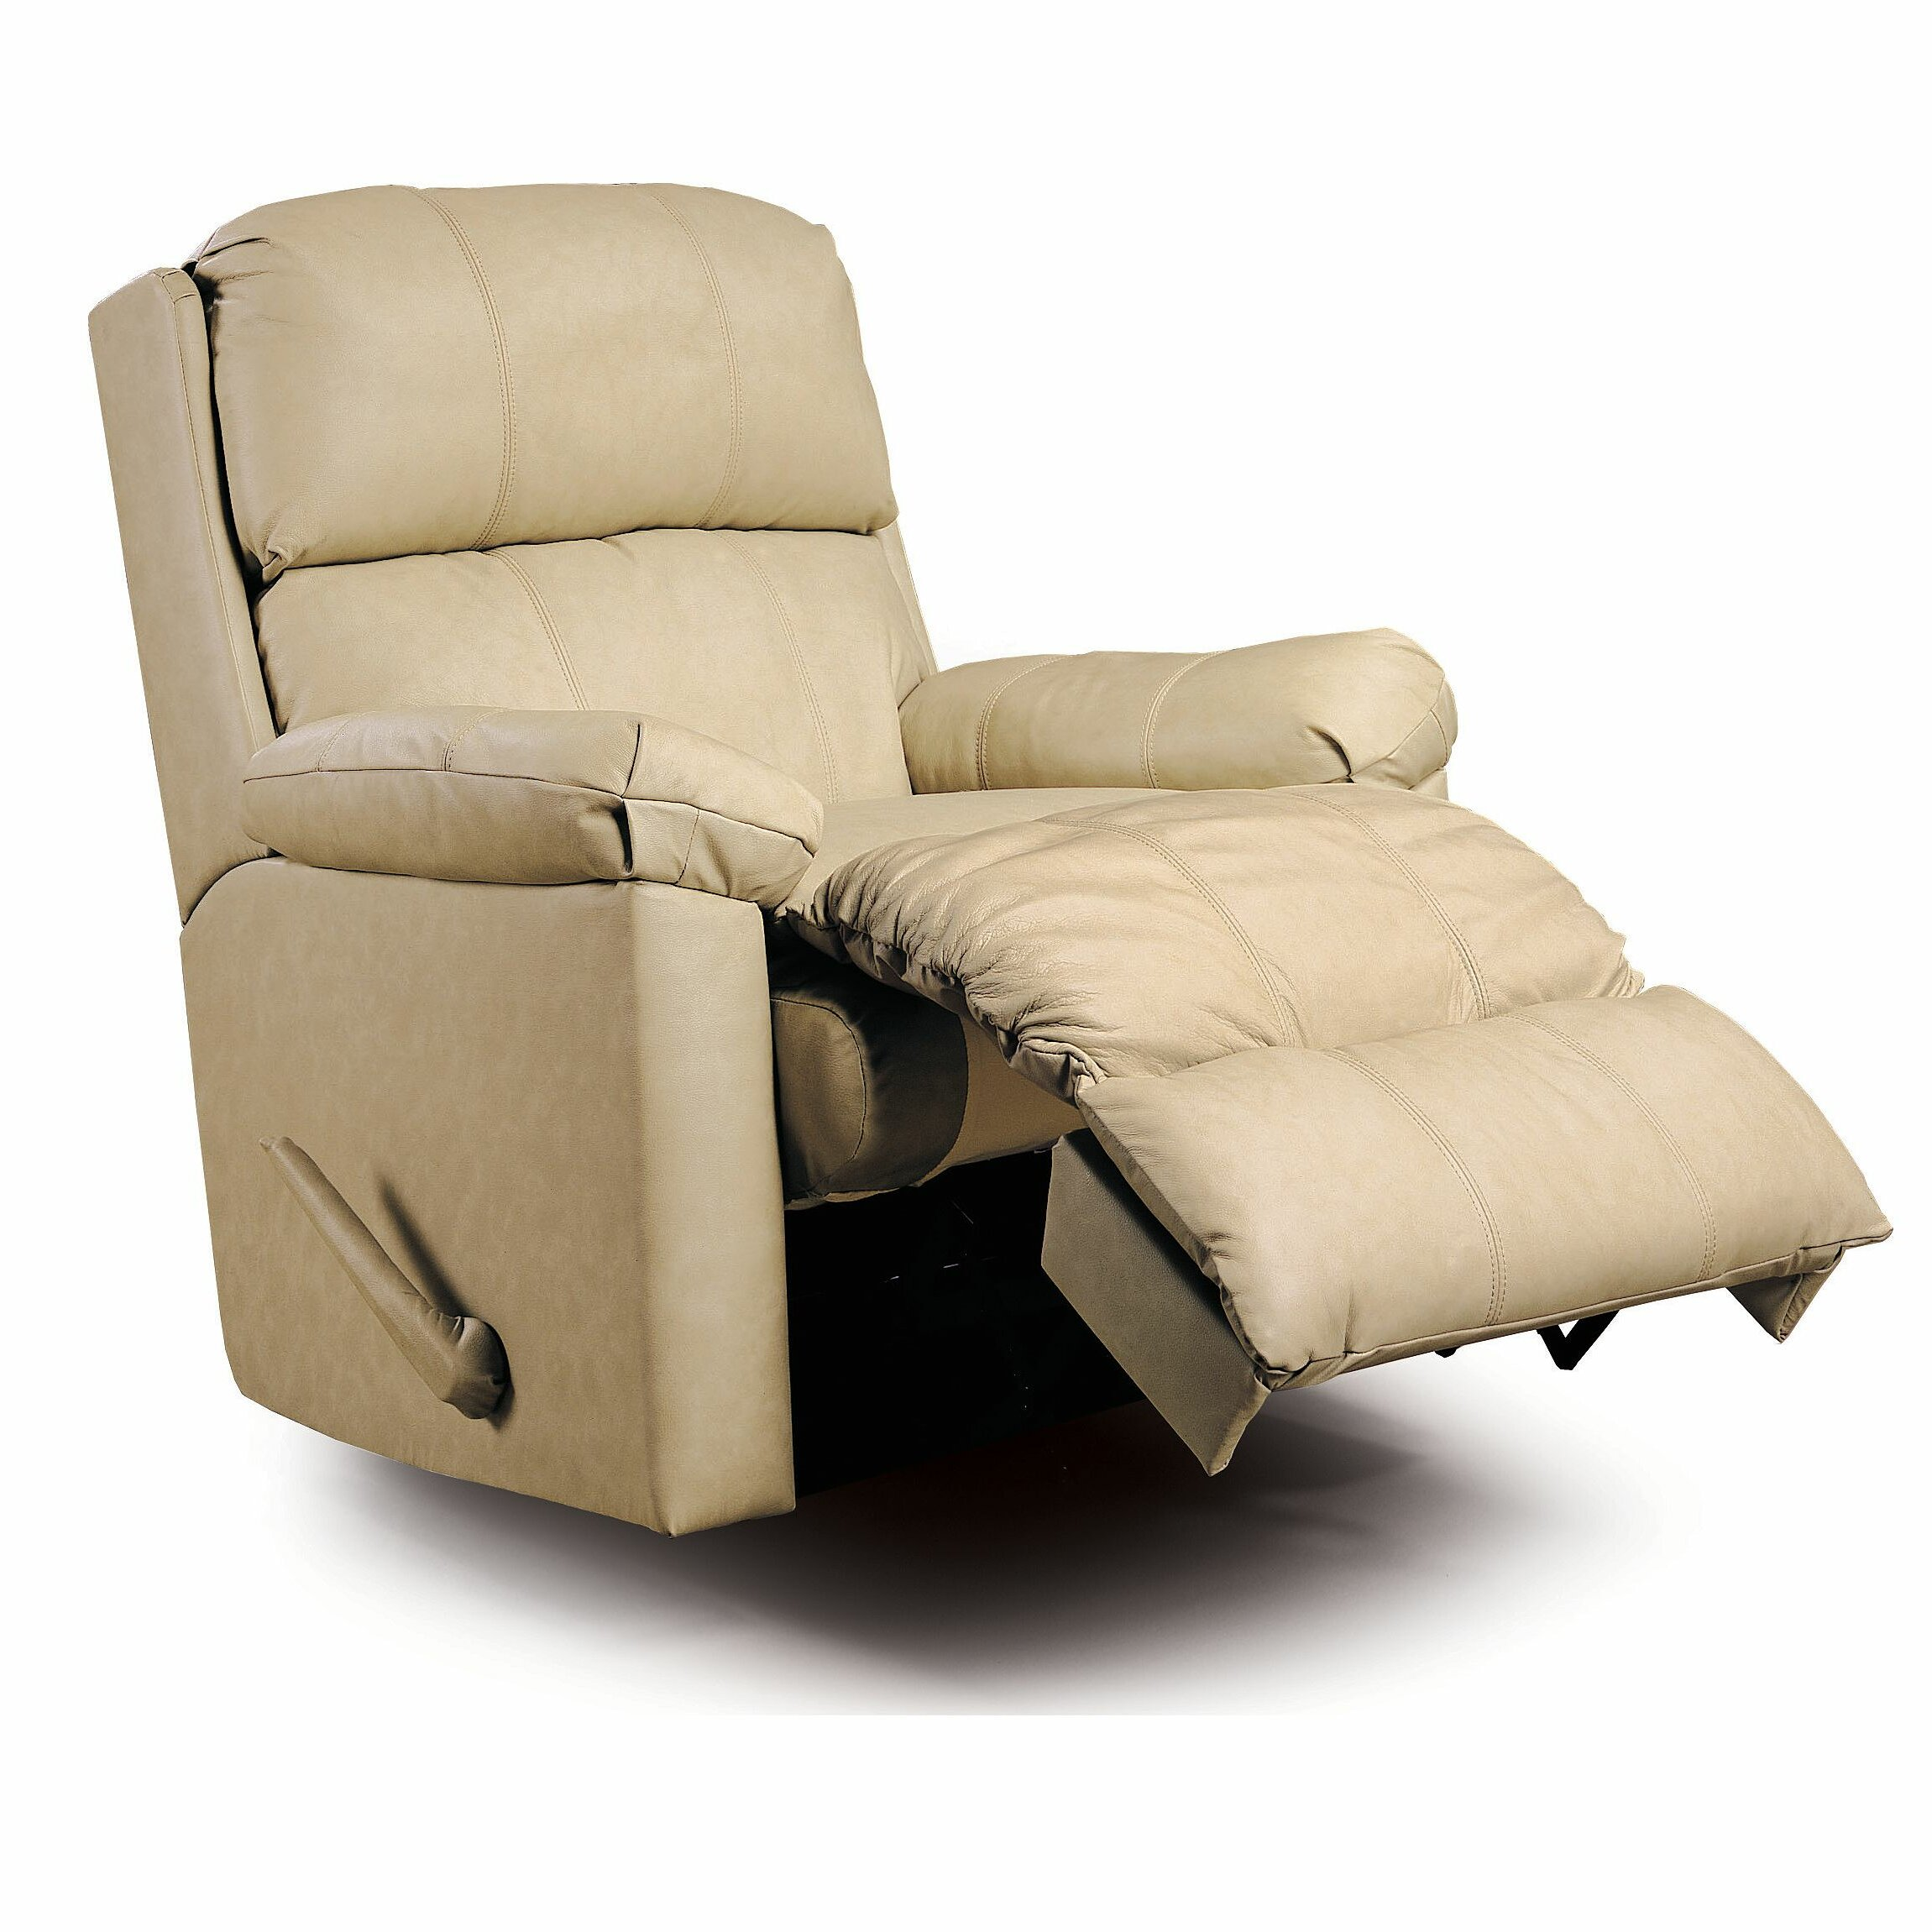 Lane furniture timeless recliner wayfair for Lane furniture